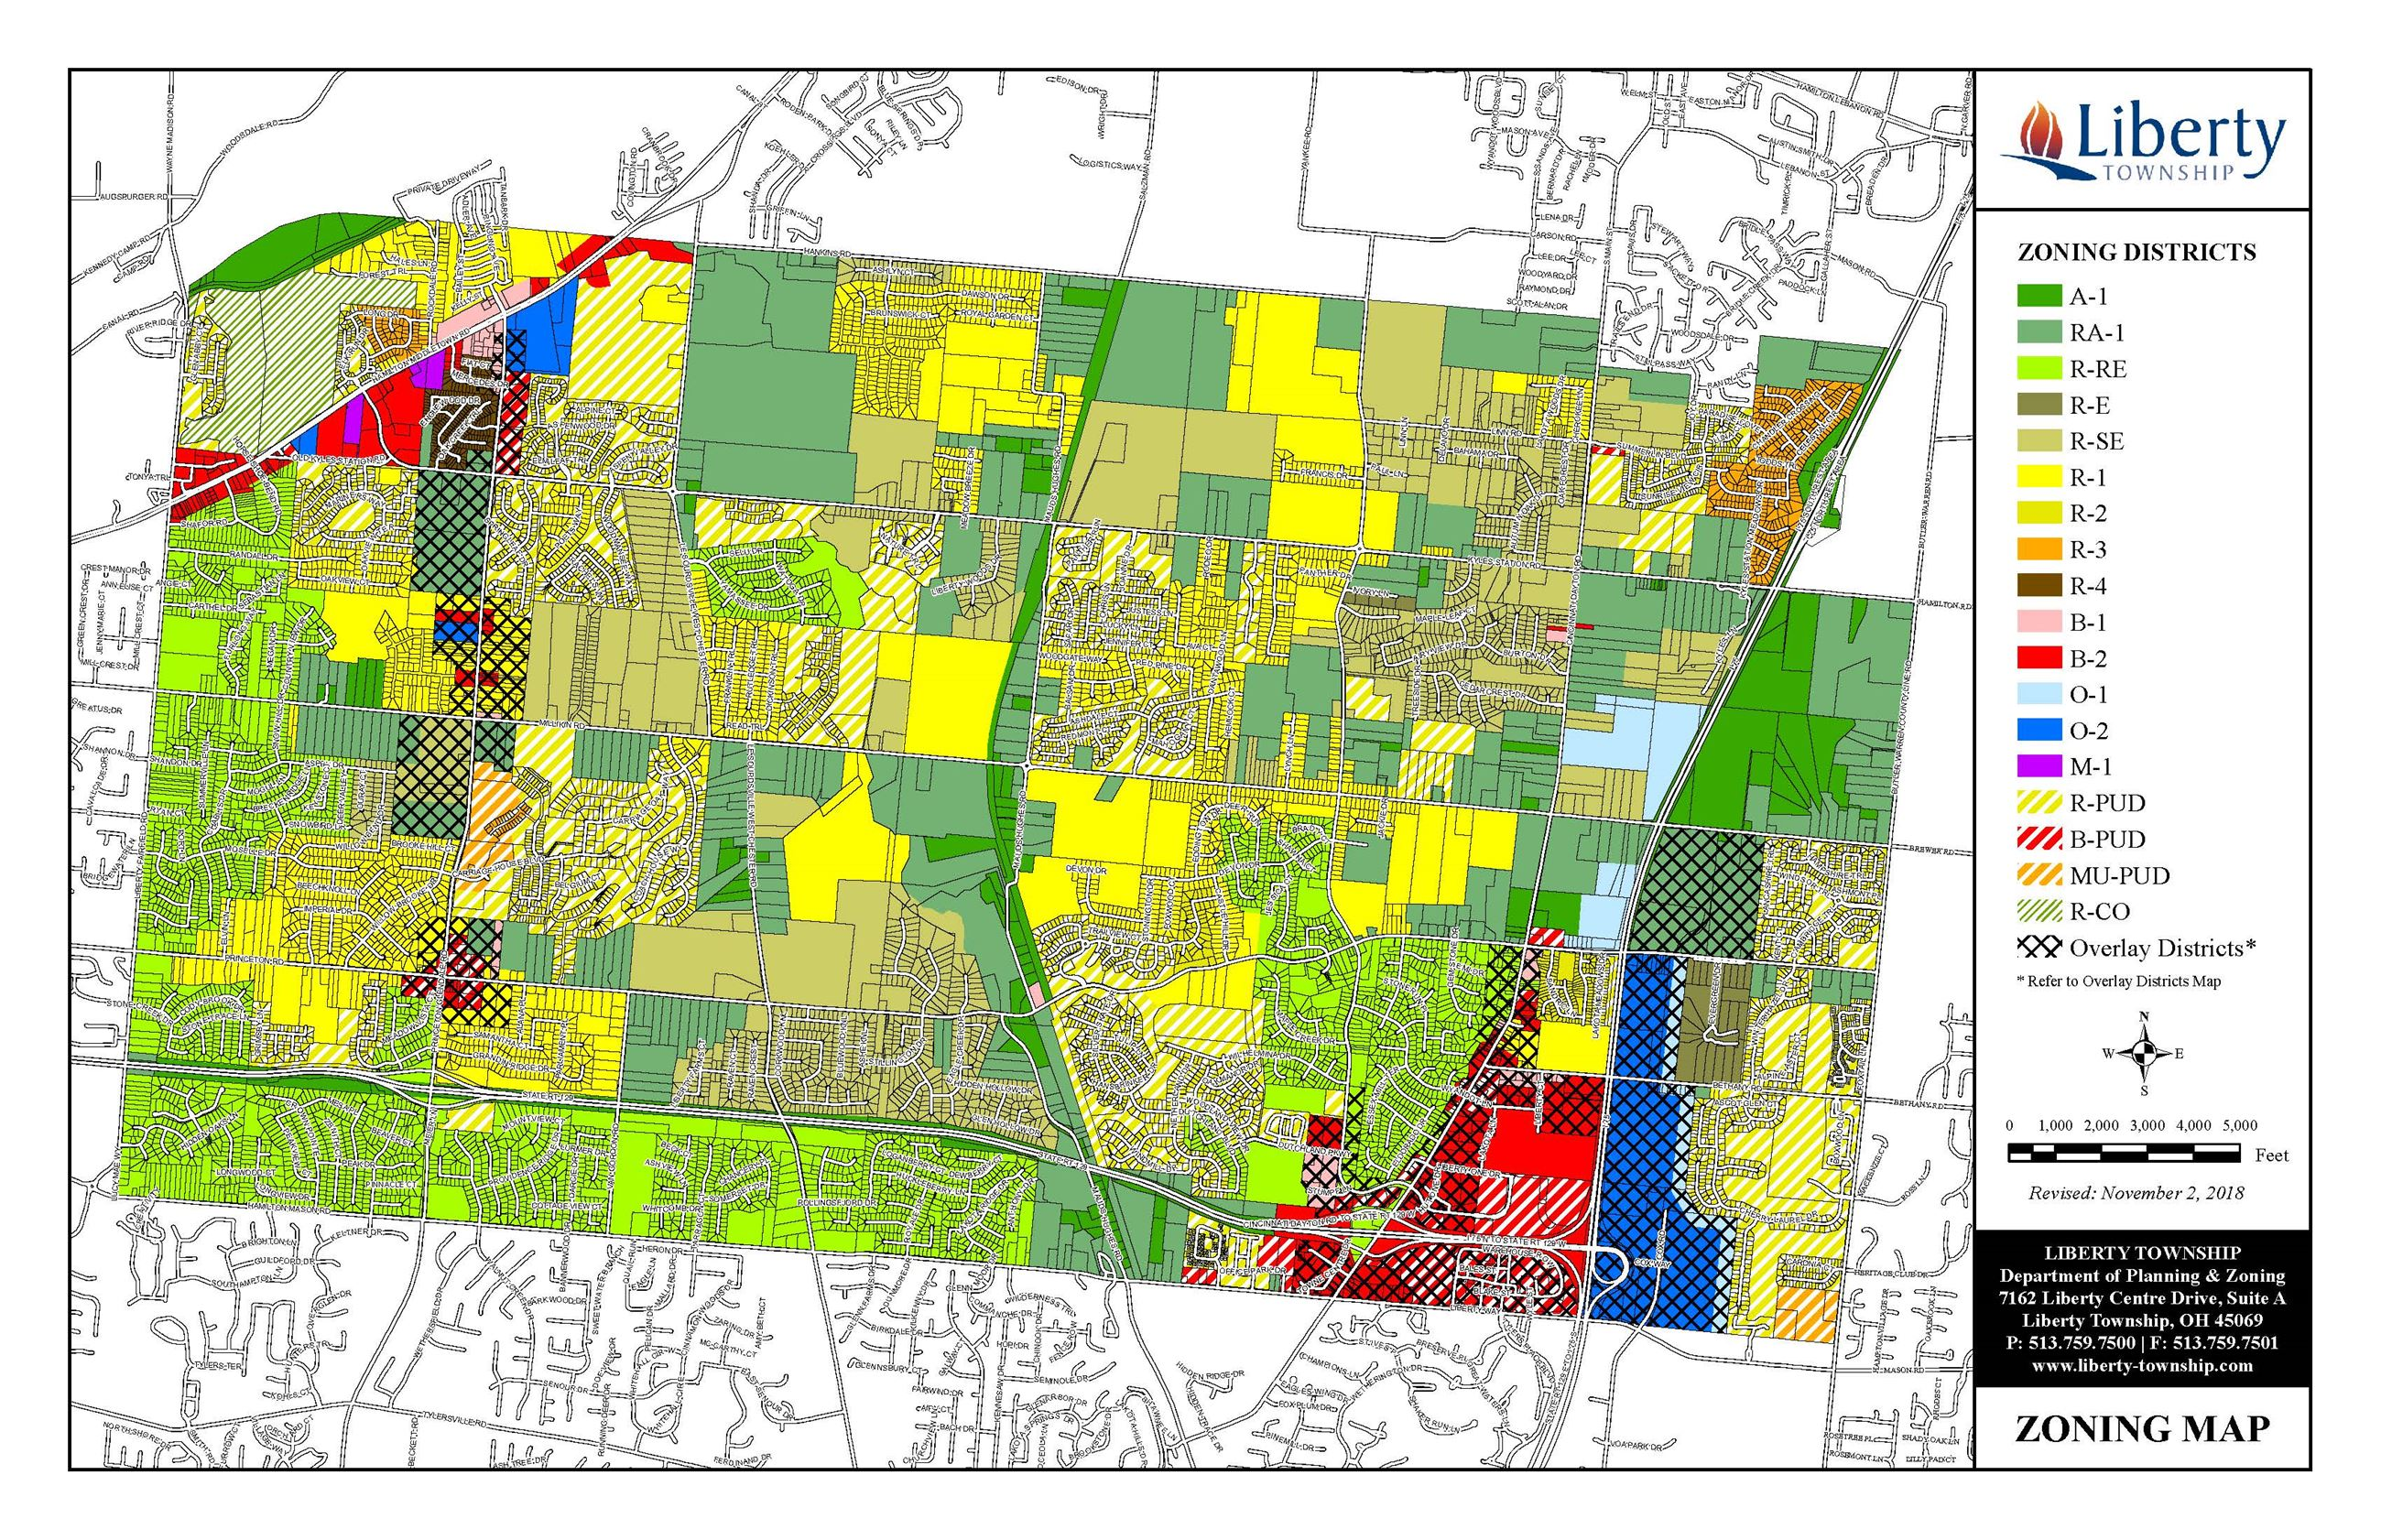 Liberty Twp Zoning Map 11_2_18